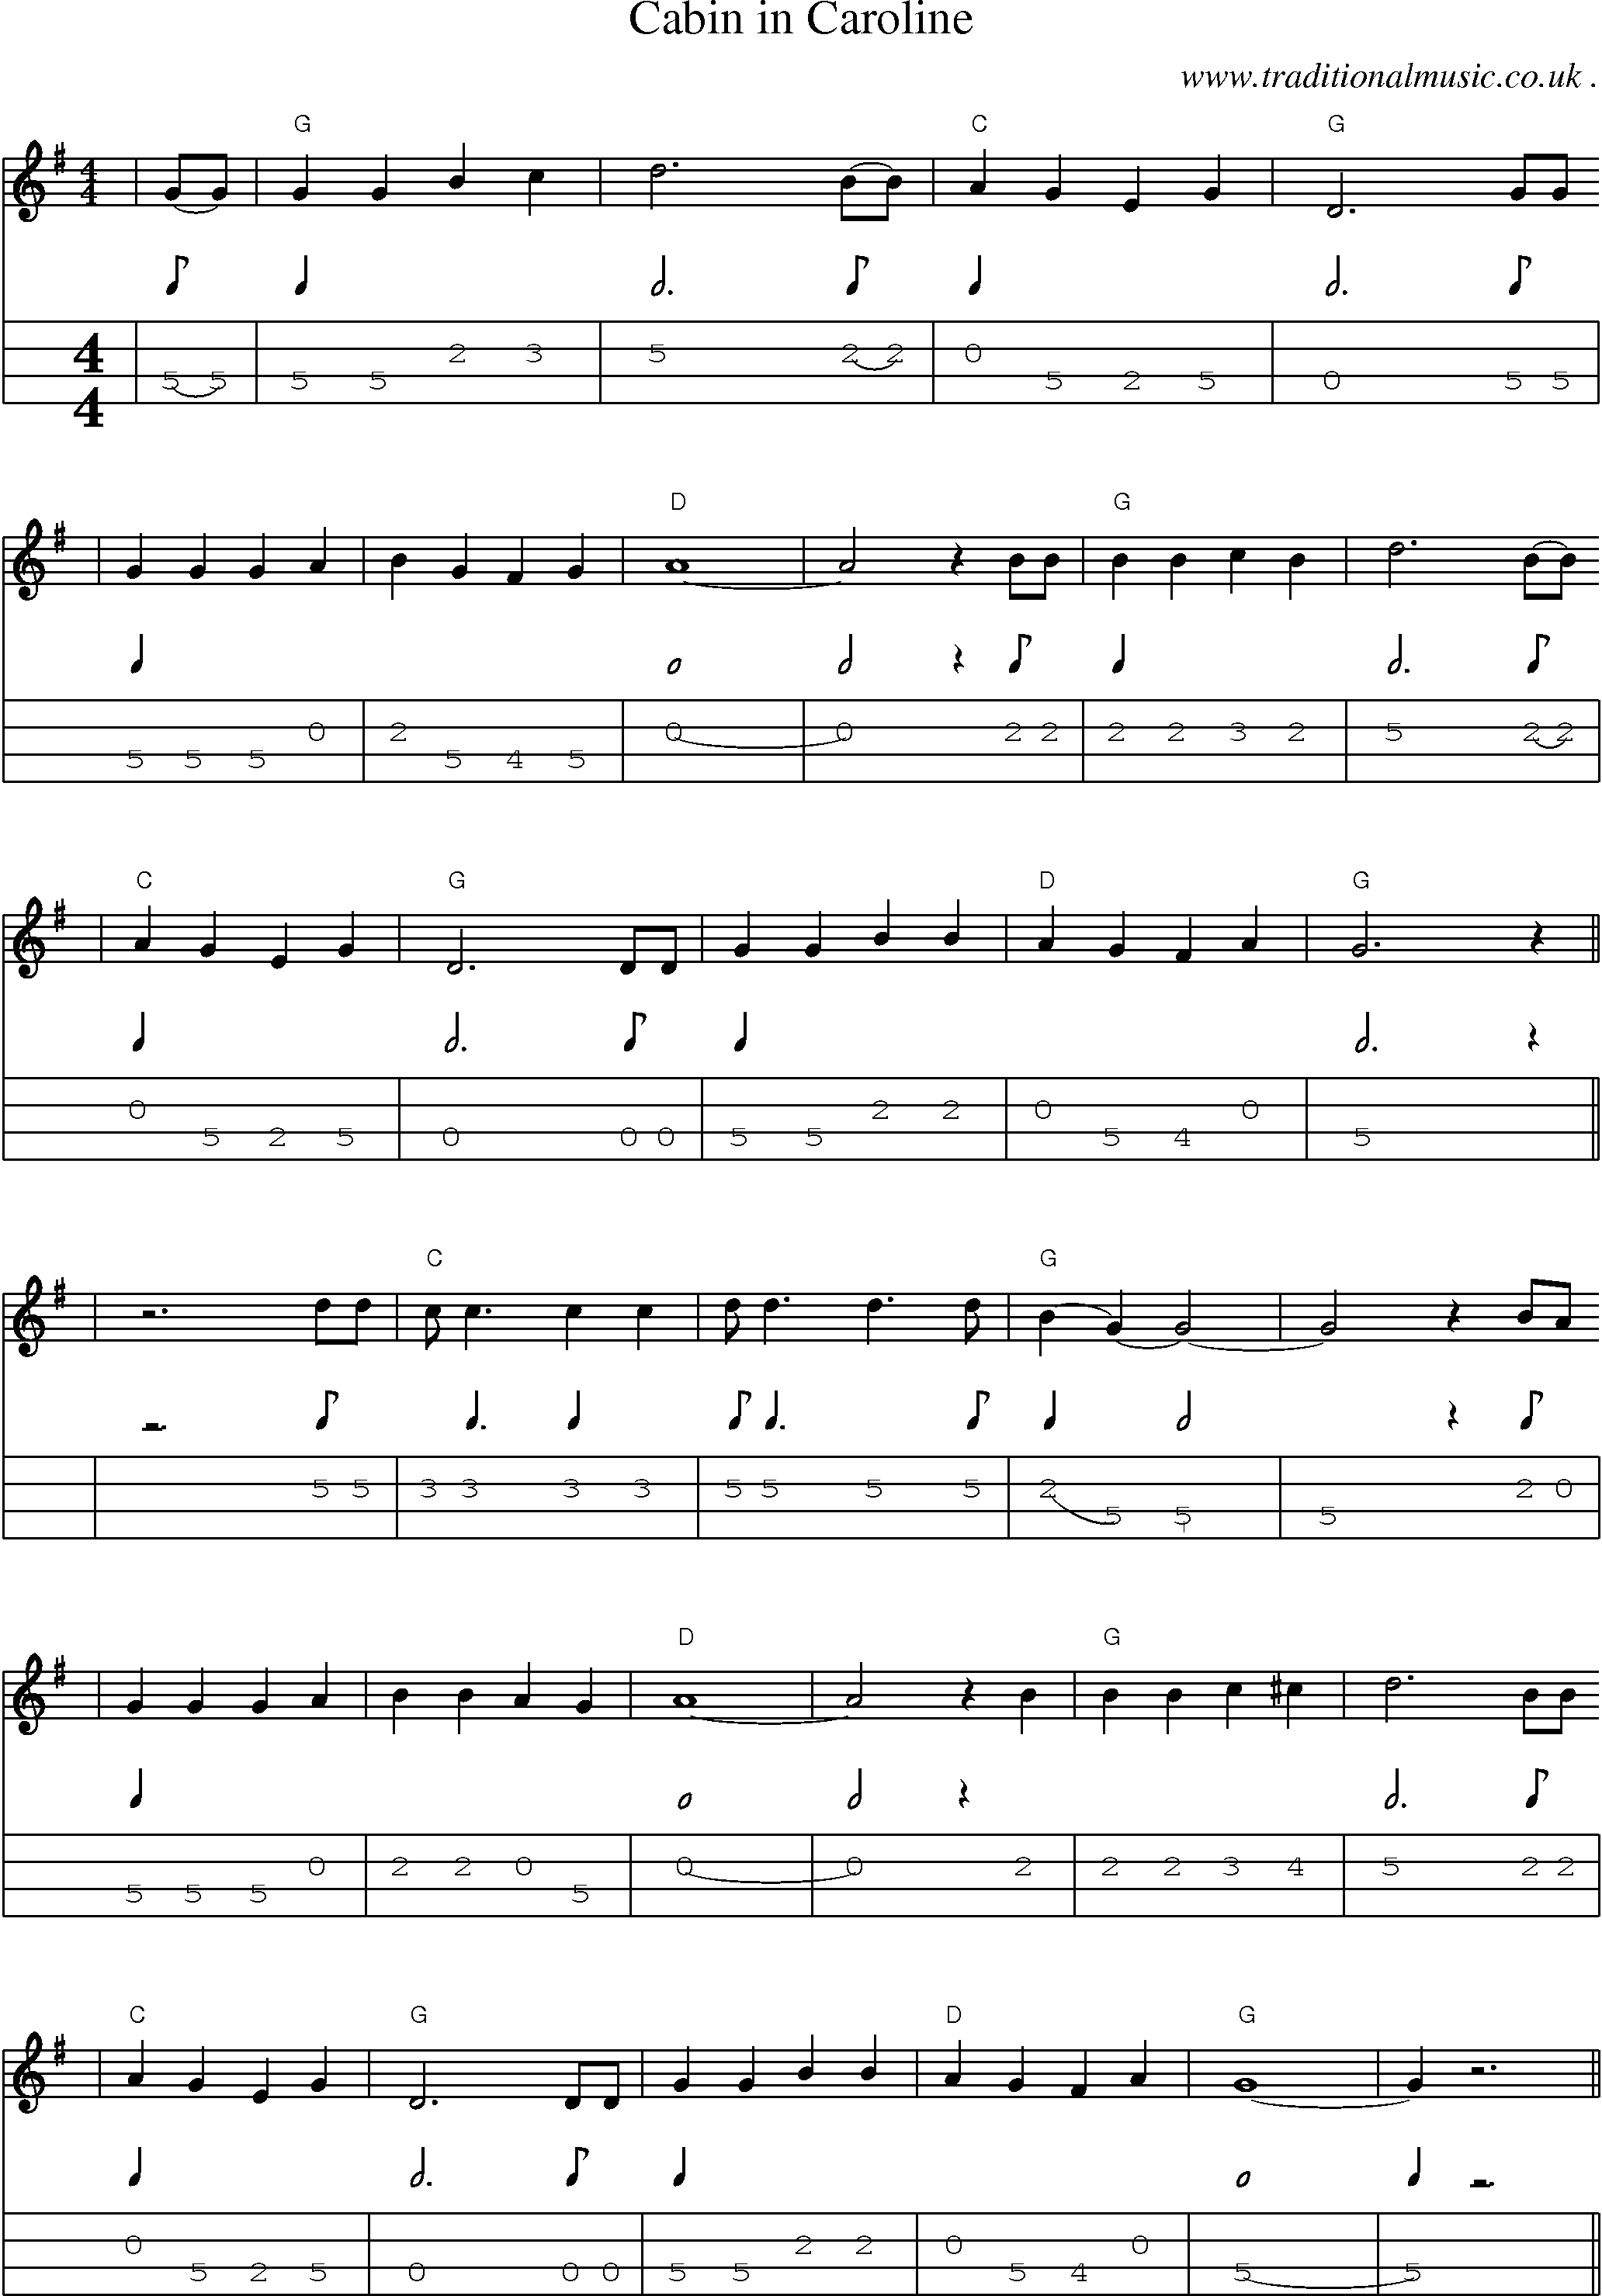 American Old-time music, Scores and Tabs for Mandolin